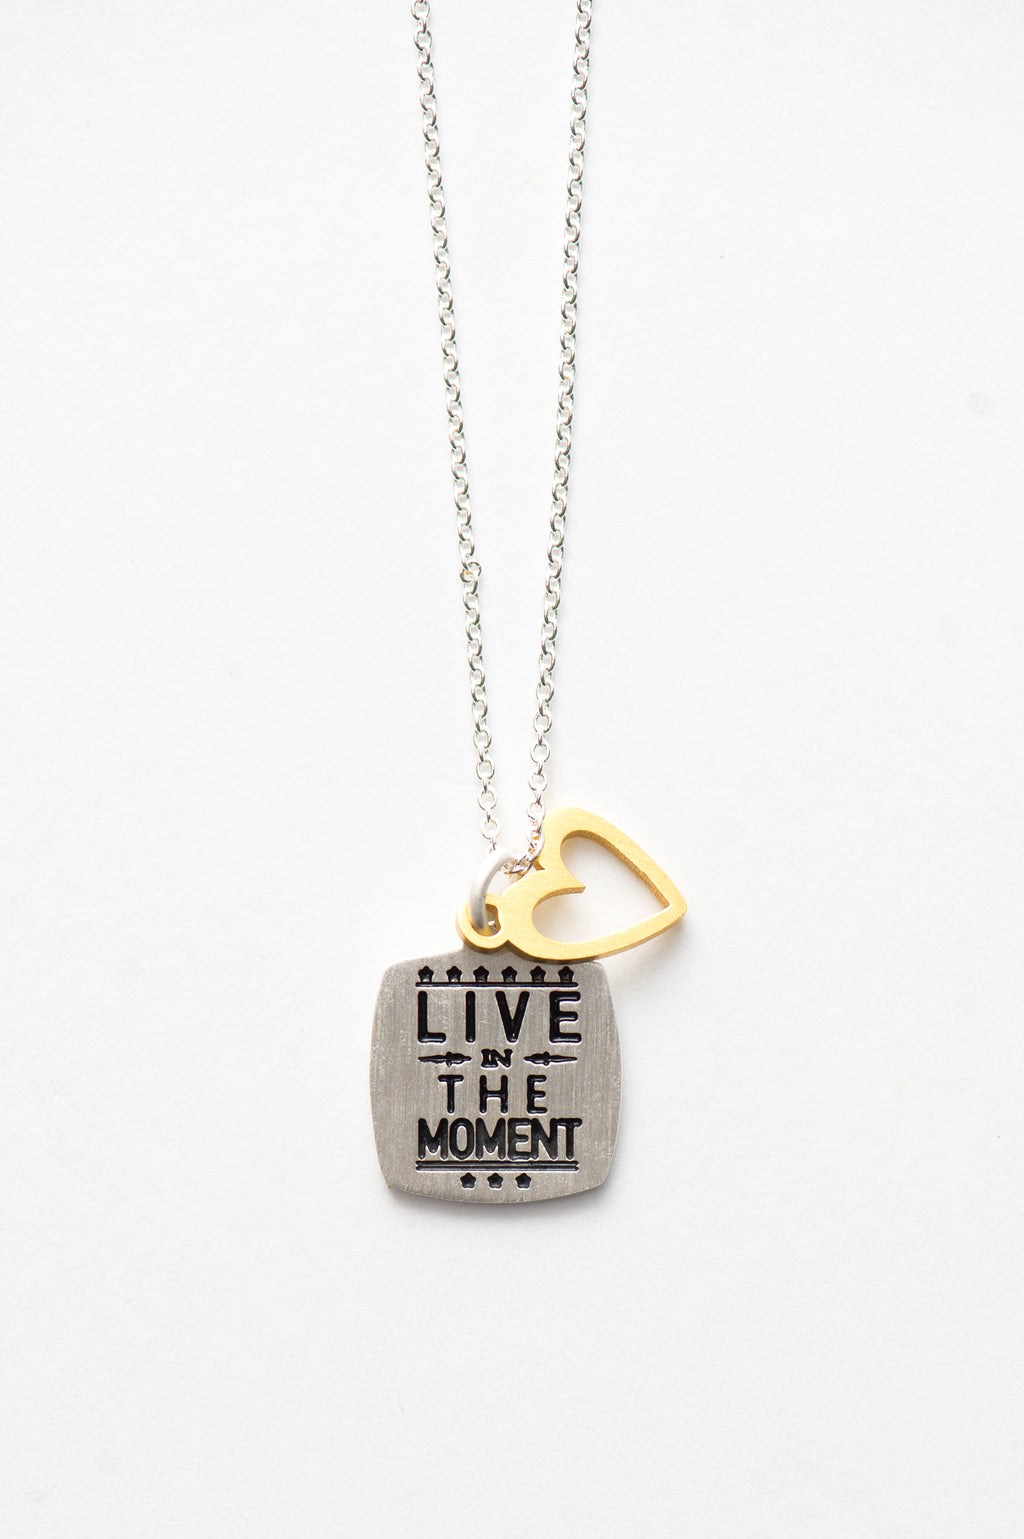 LIVE IN THE MOMENT NECKLACE